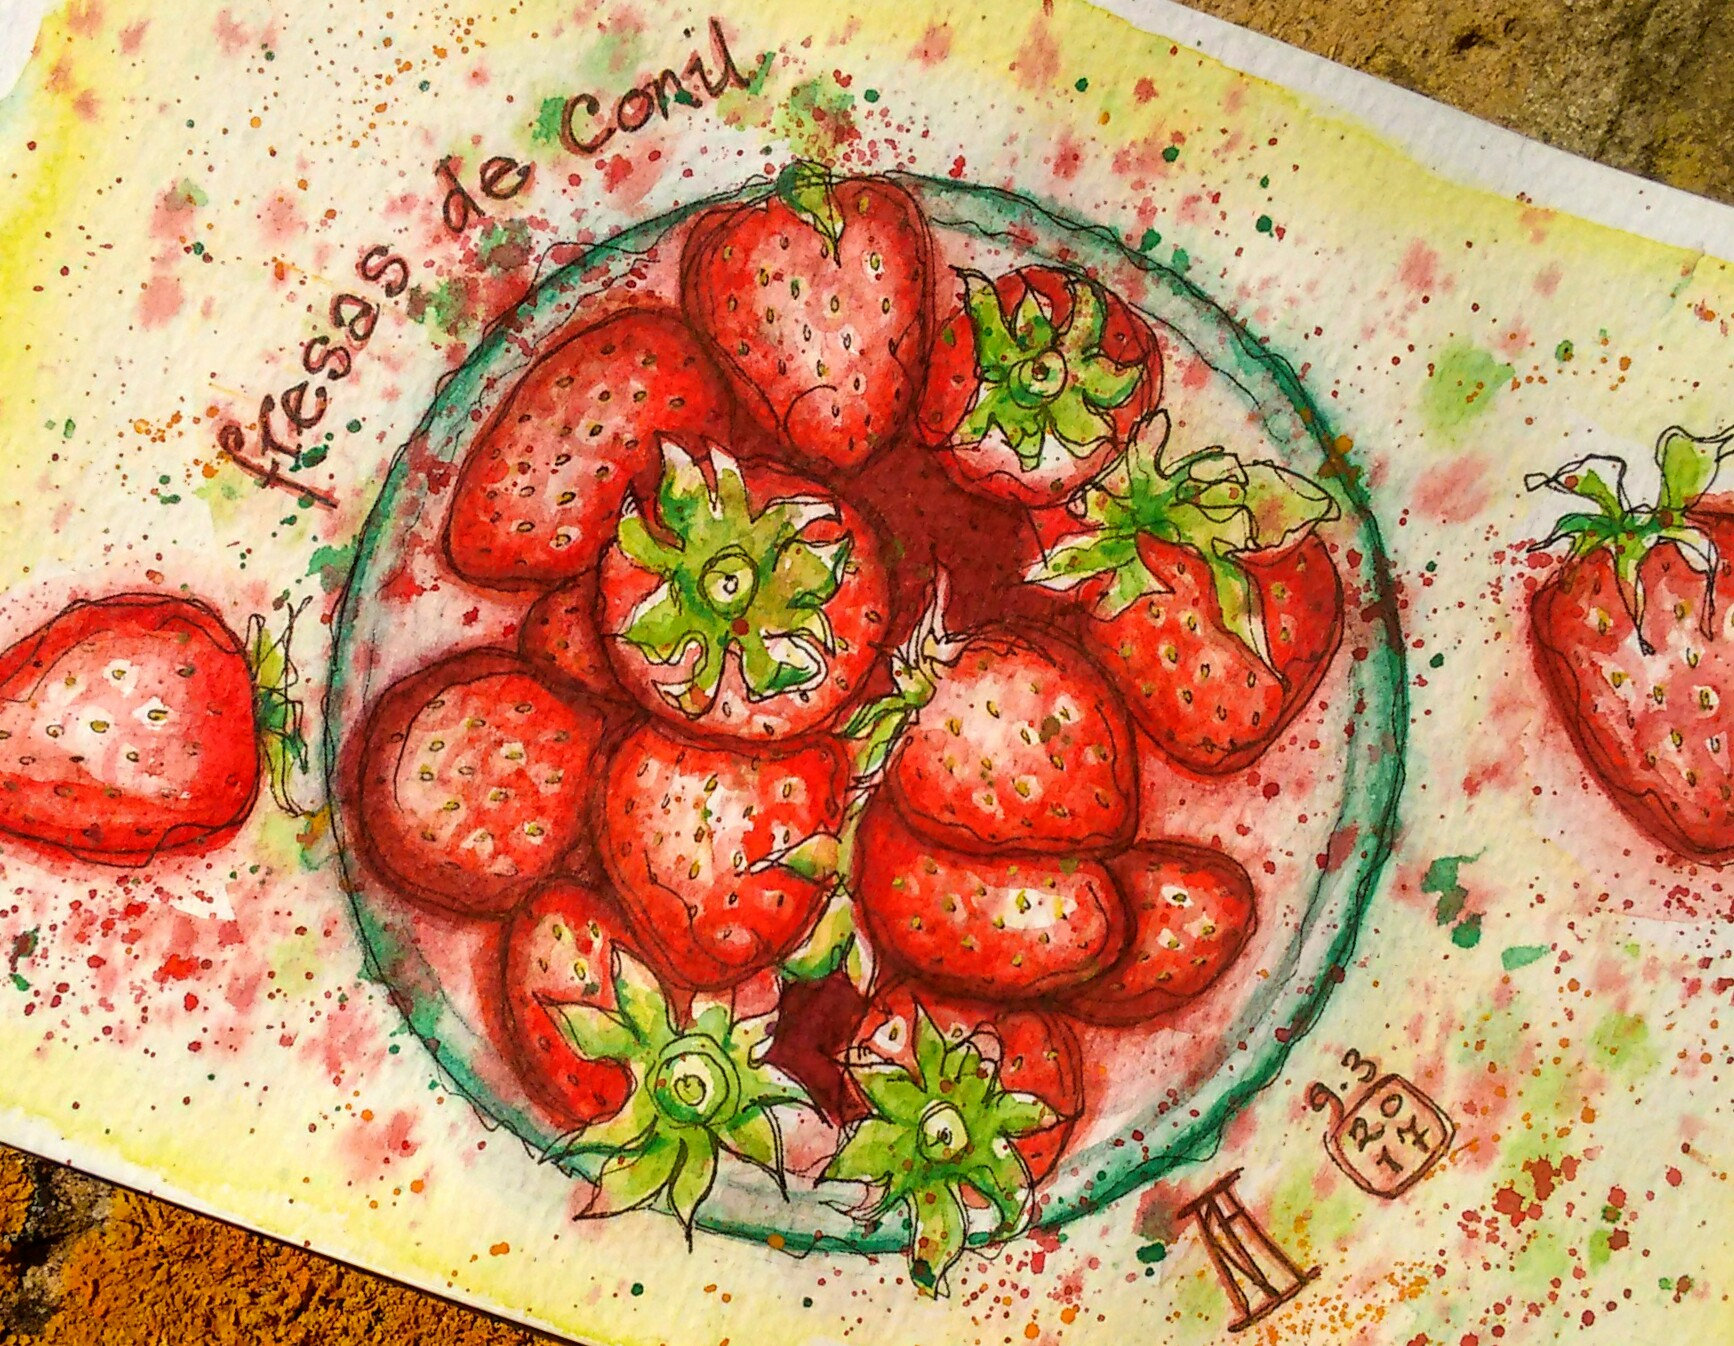 strawberries, strawberry, fruit, fresa, fresas, conil, fruta, pen and watercolour, watercolour, water color, sketch, food, illustration, ilustracion, primavera, spring